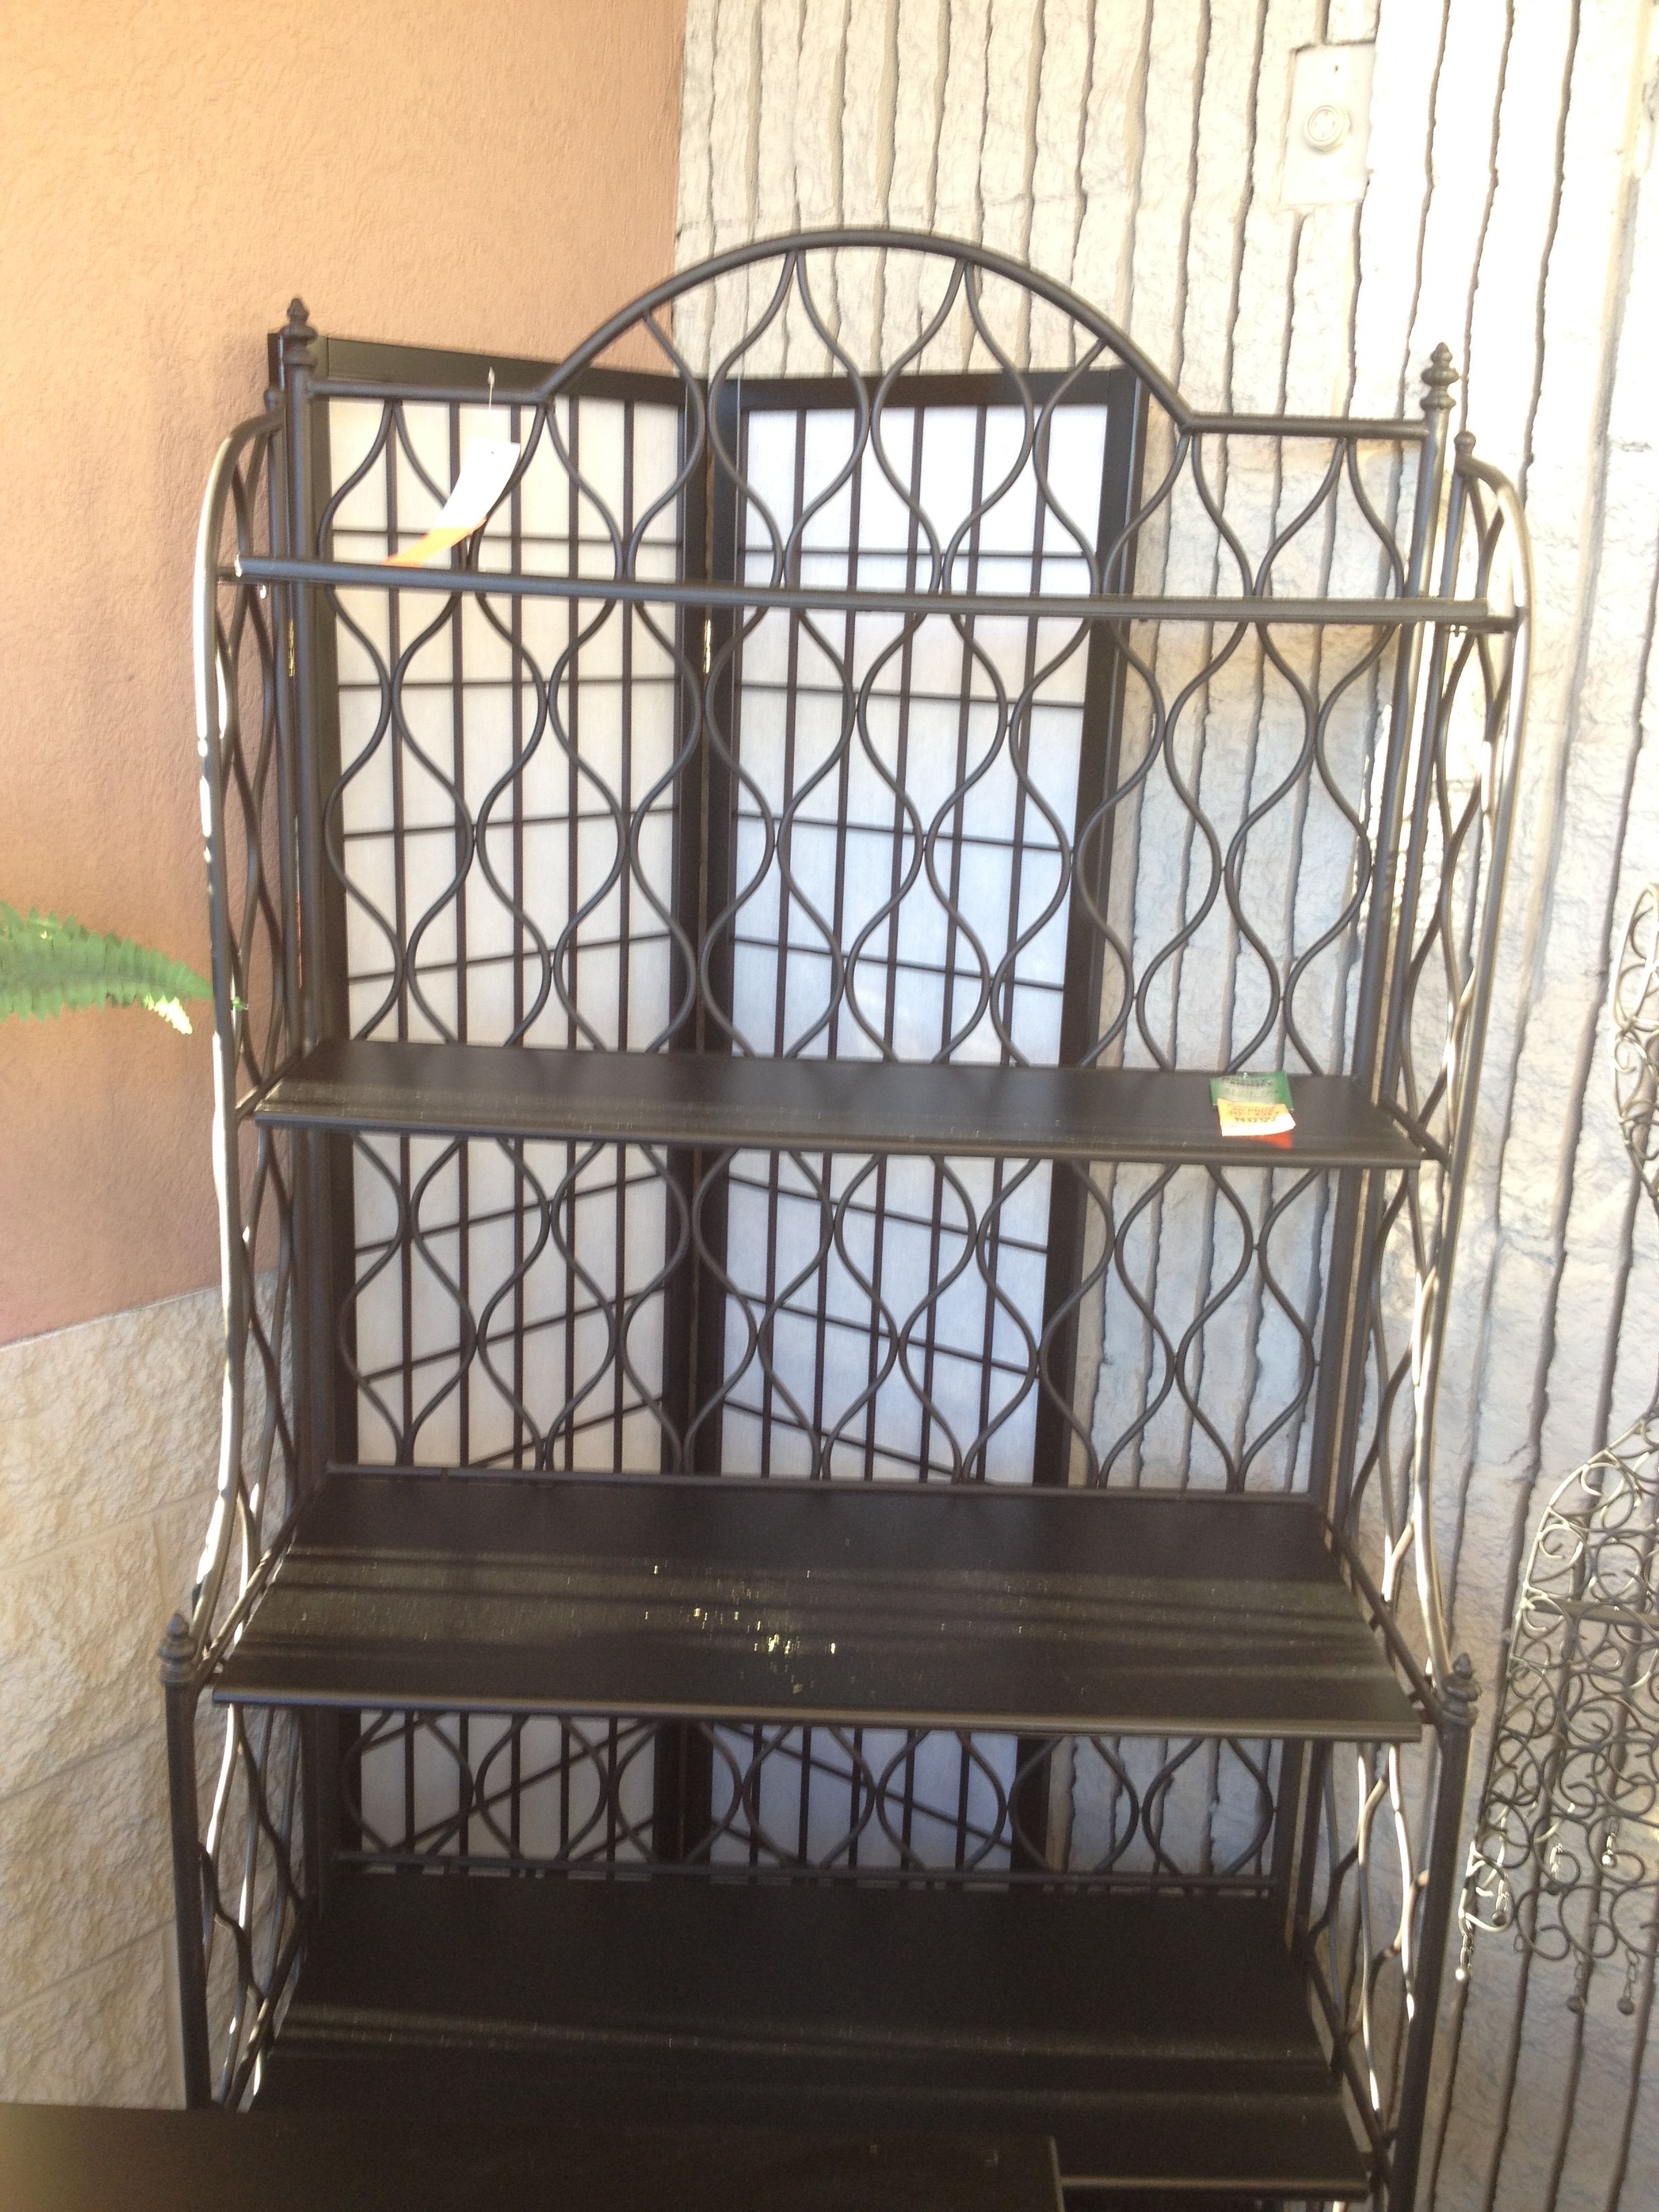 Bakers Rack Hobby Lobby With Images Bakers Rack Hobby Lobby Furniture Hobby Lobby